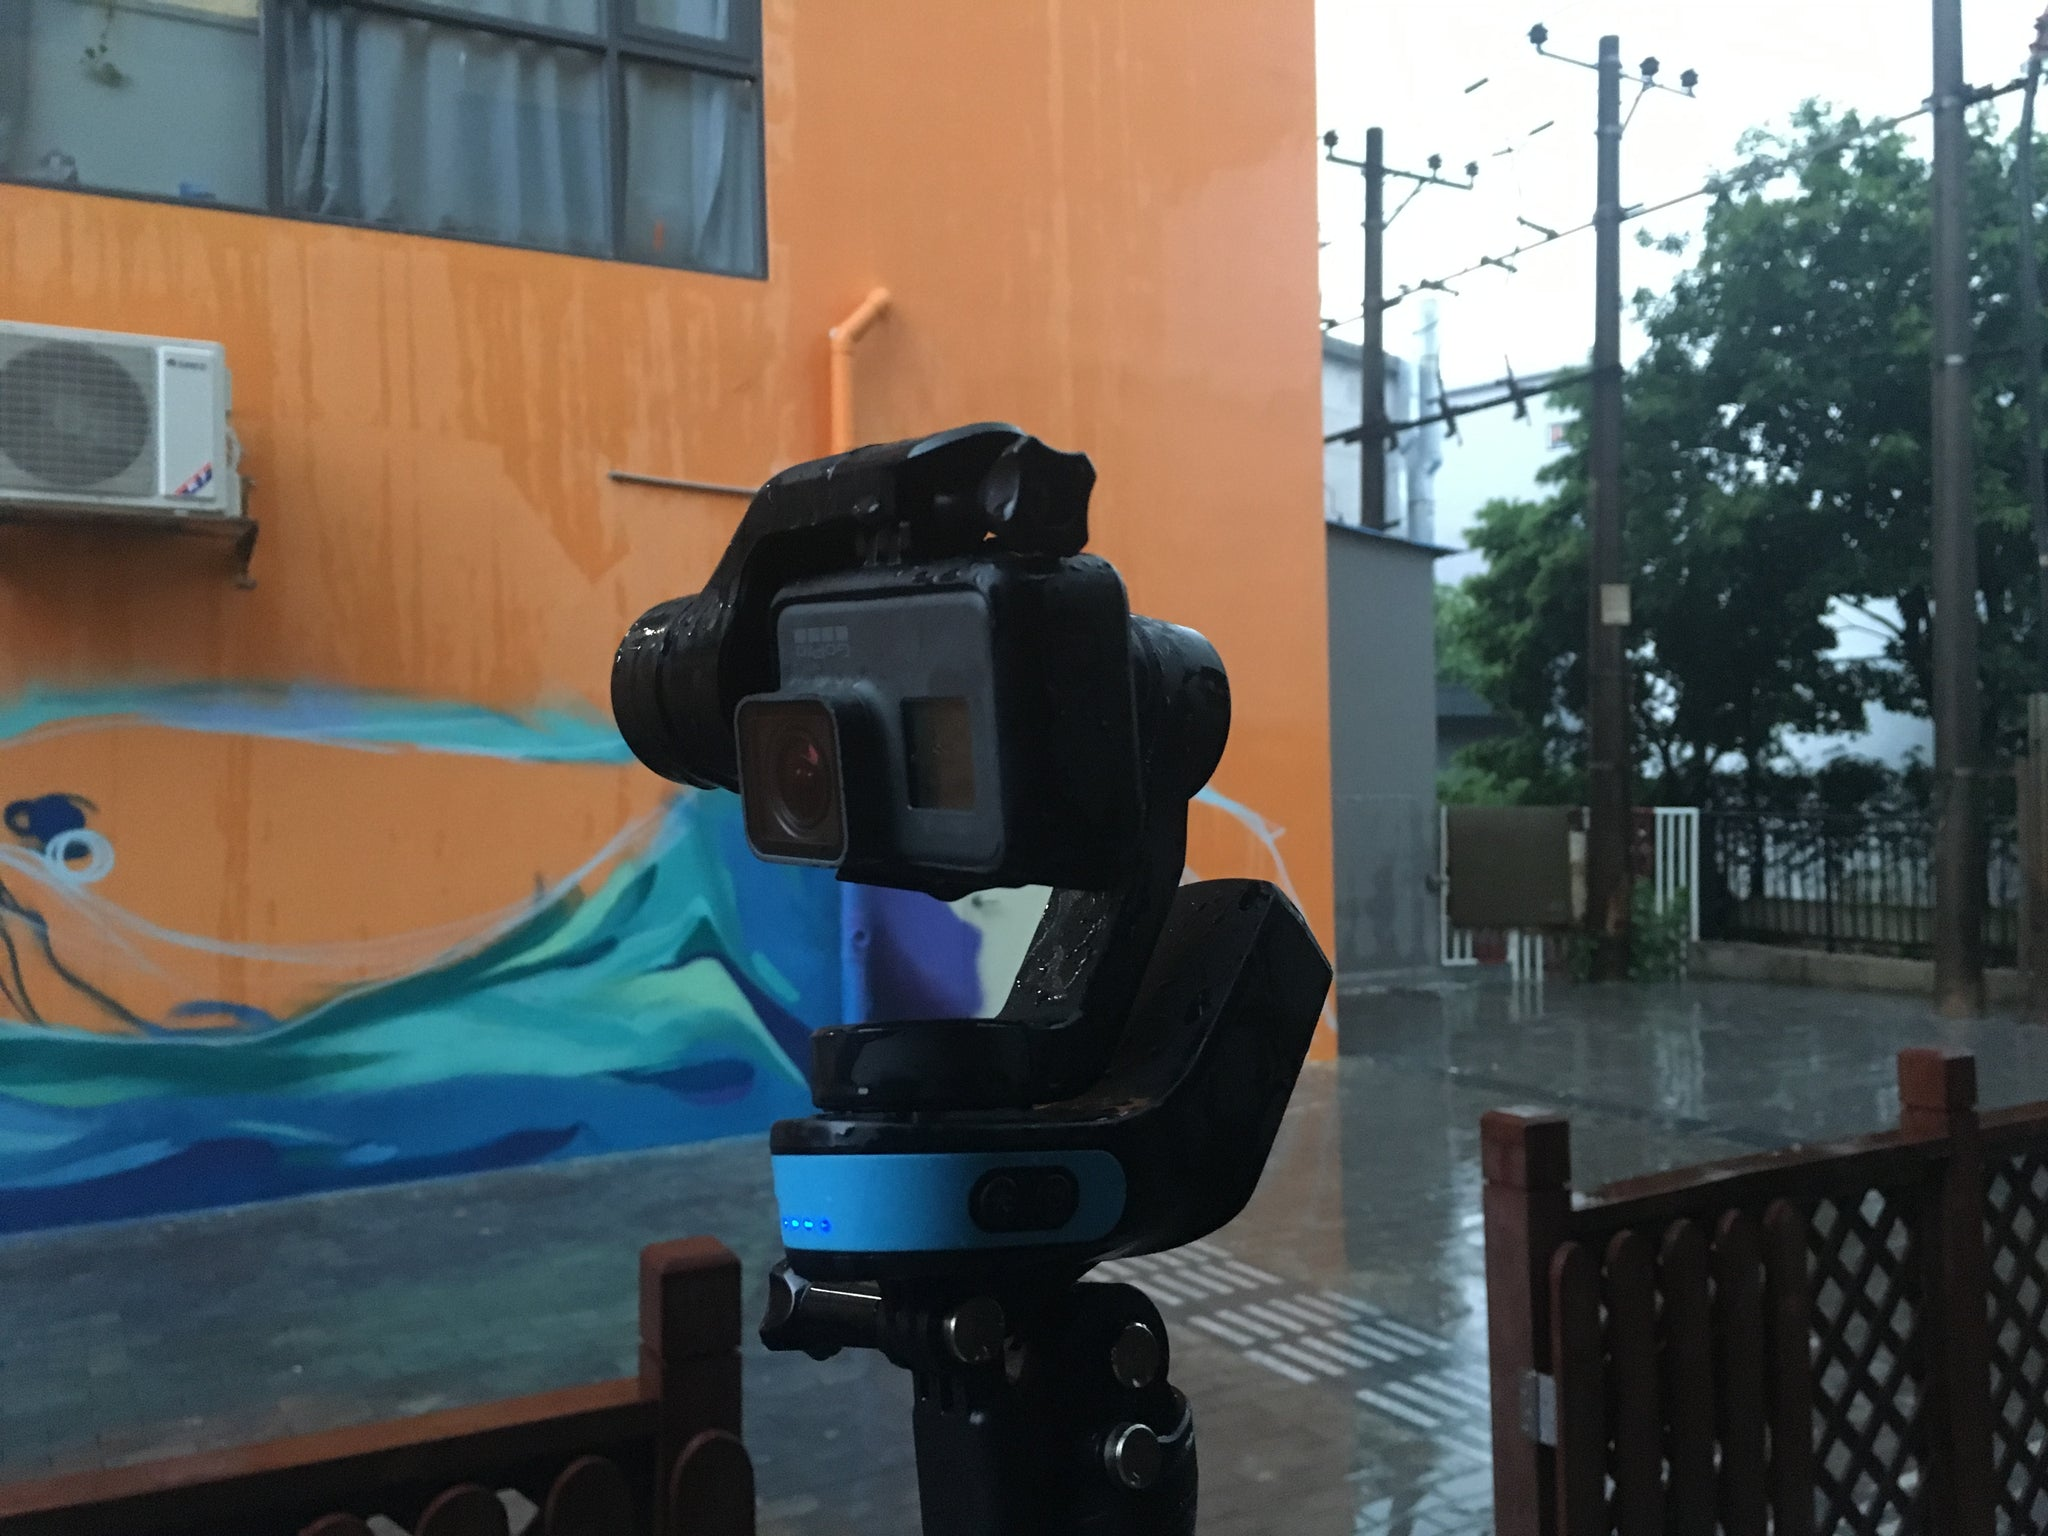 A solid update about making a waterproof gimbal